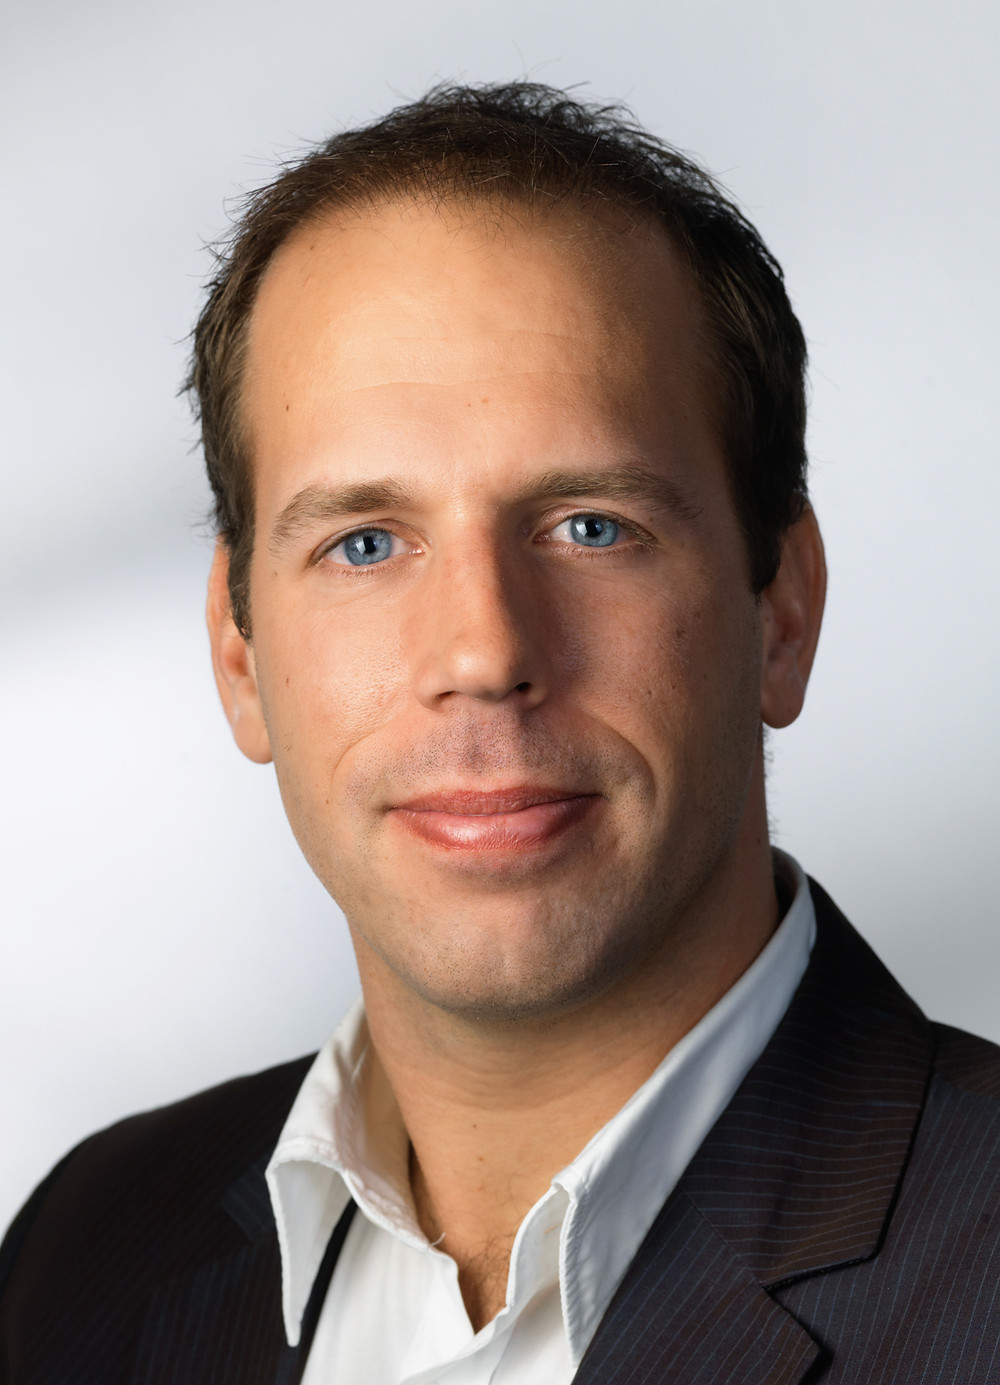 Herwin van der Kamp, Managing Director of Telecombinatie Group